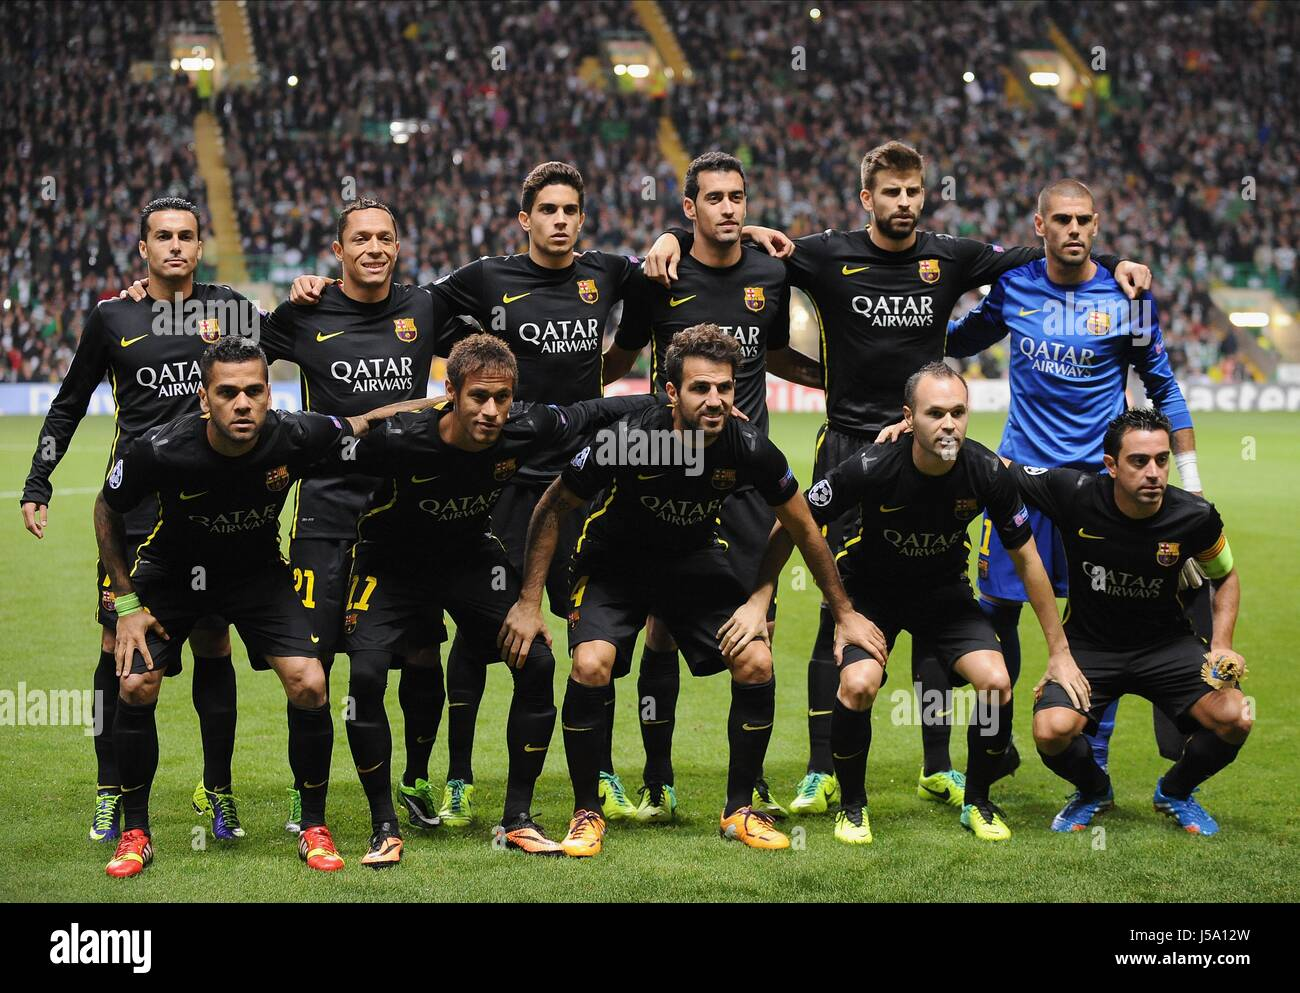 Celtic Fc Team Stock Photos Images Alamy Barcelona Group Glasgow